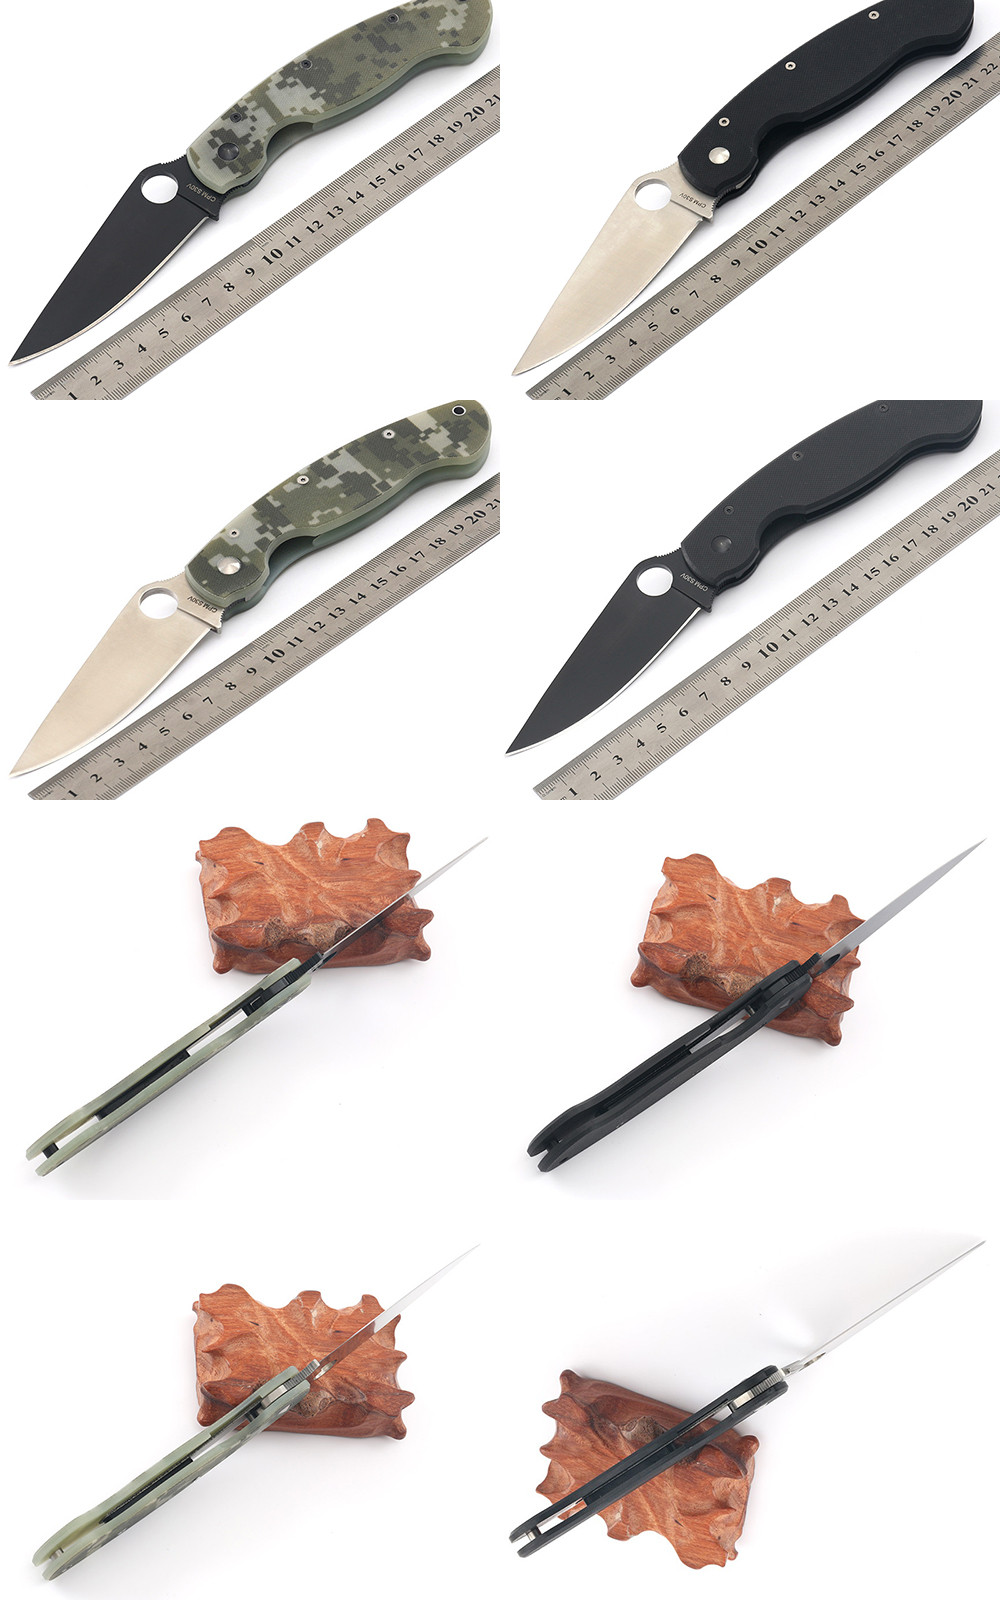 Buy WTT C196 Tactical Folding Knife CPM-S30V G10 Handle Ball Bearing Survival Combat Camping Knives Utility Hunting Pocket EDC Tools cheap